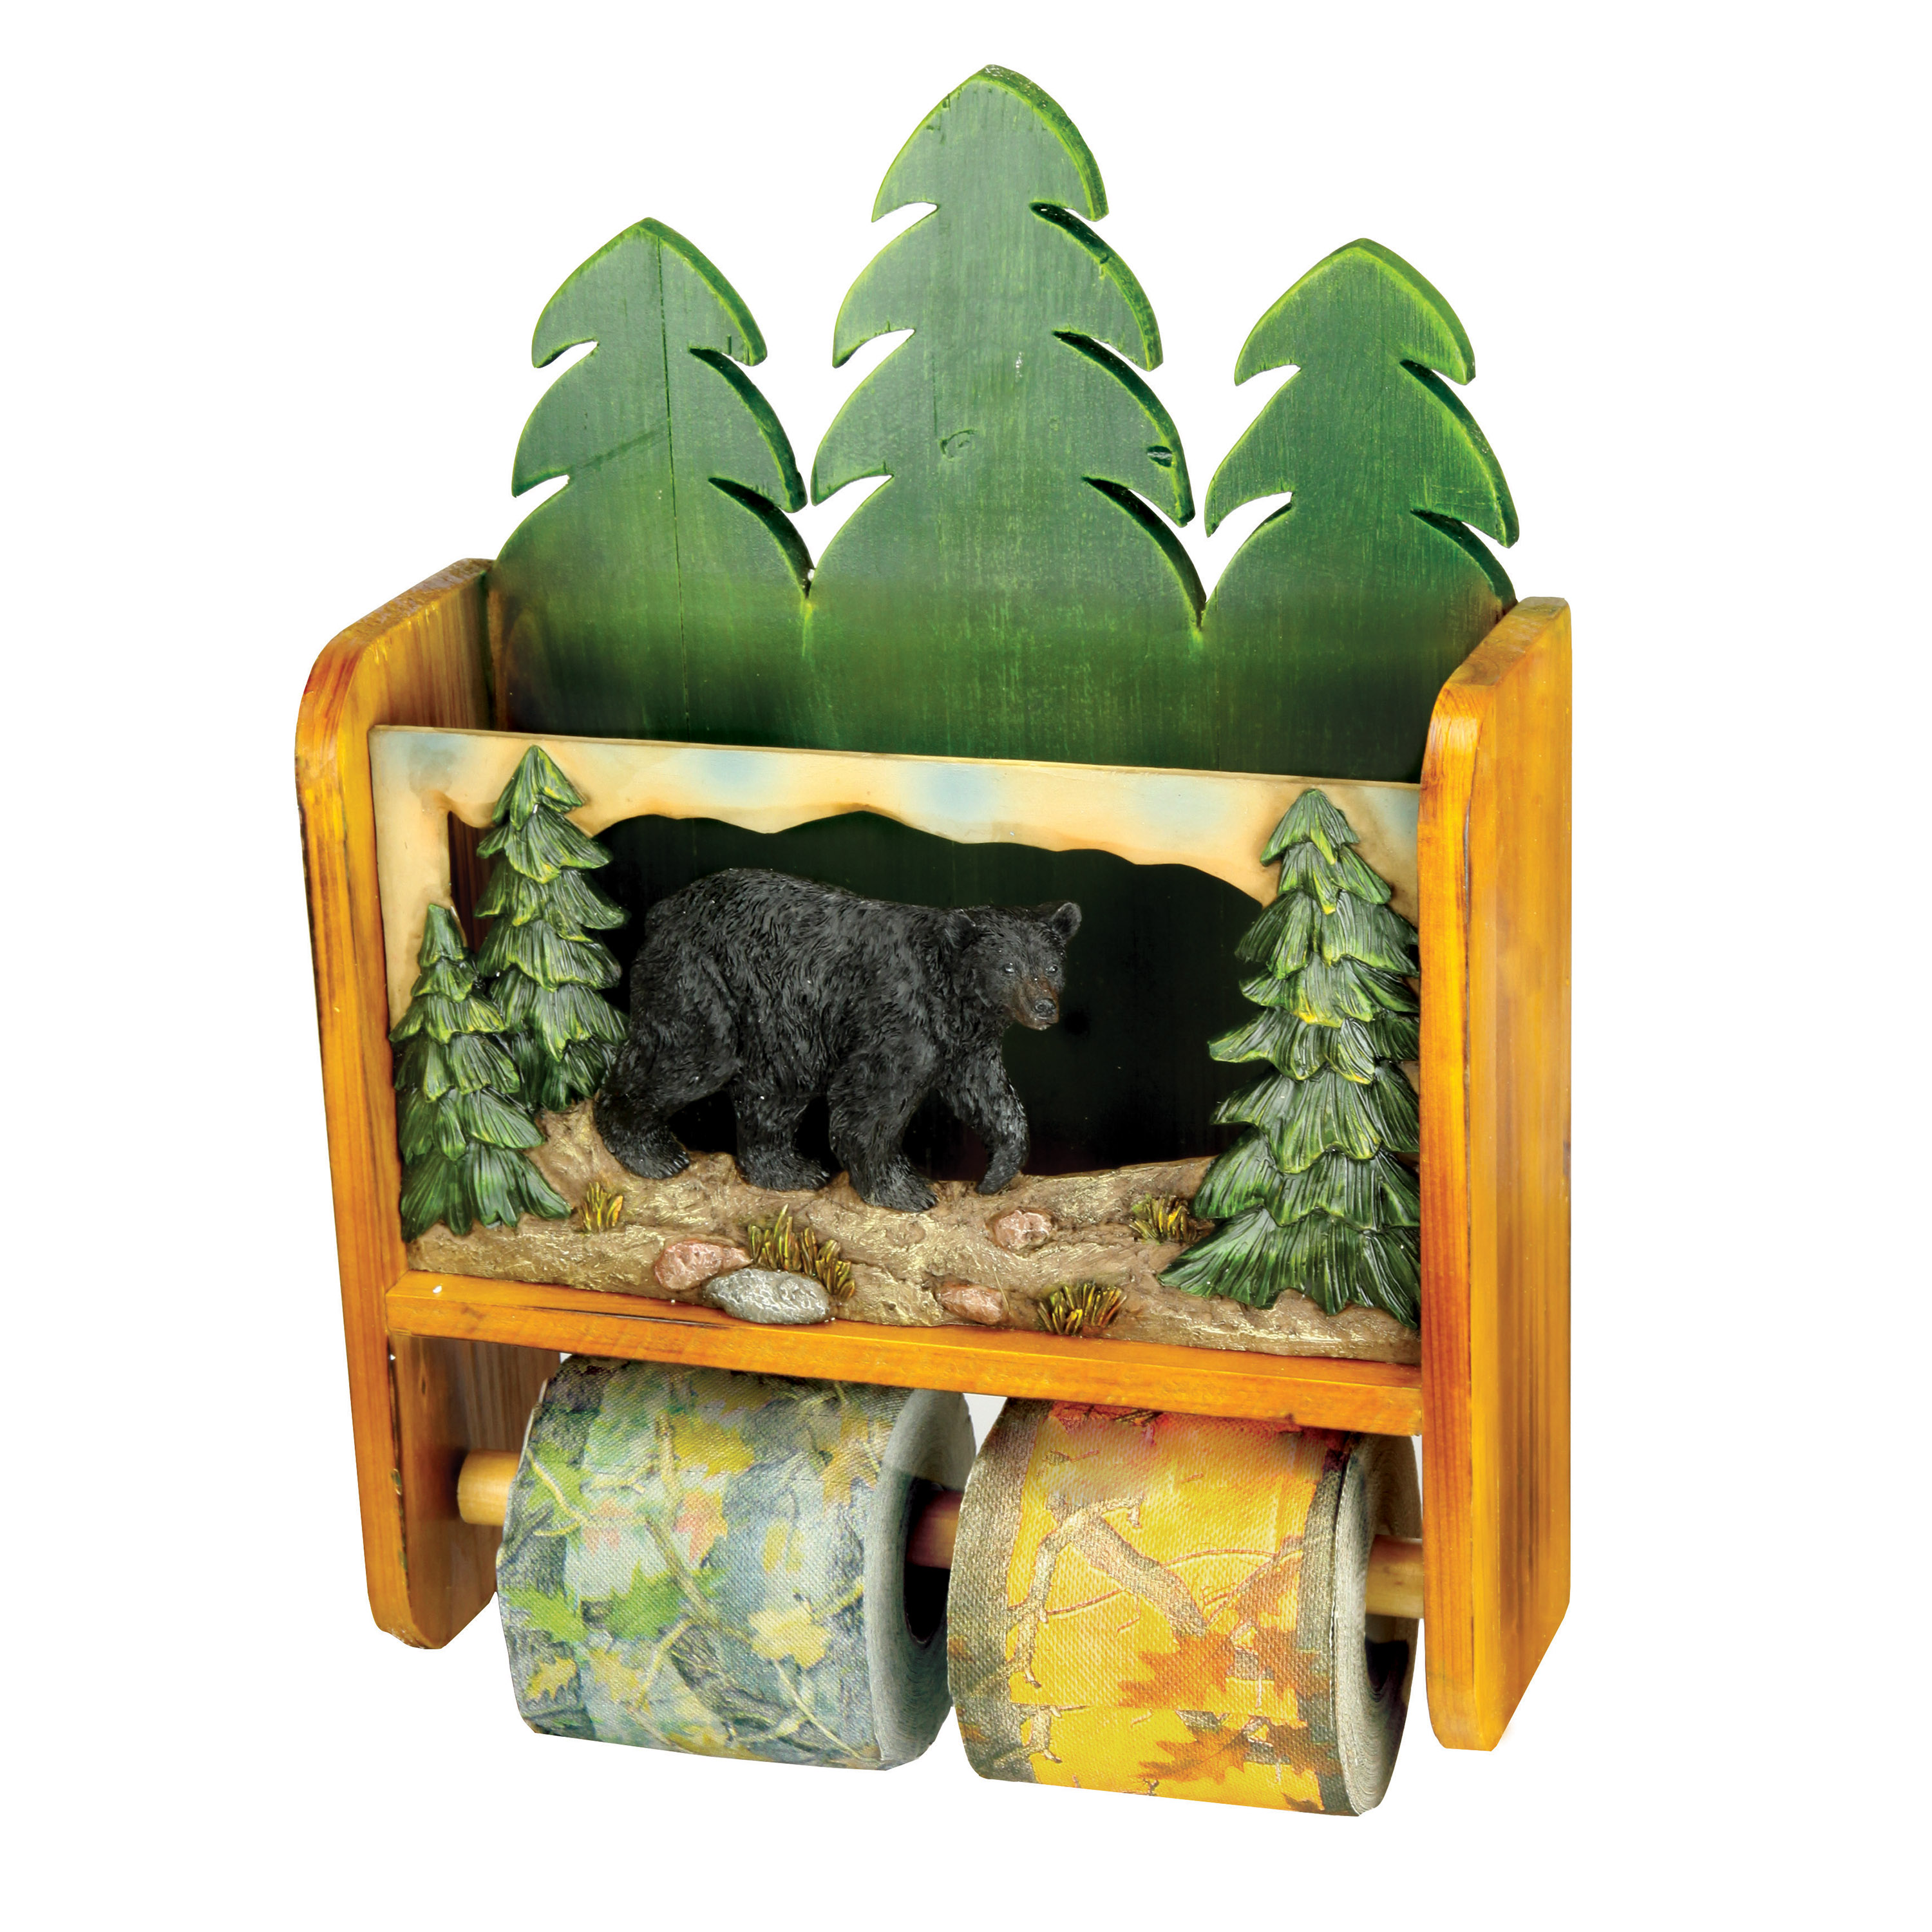 Rivers Edge Products Magazine Rack with Toliet Paper Holder Bear by Rivers Edge Products